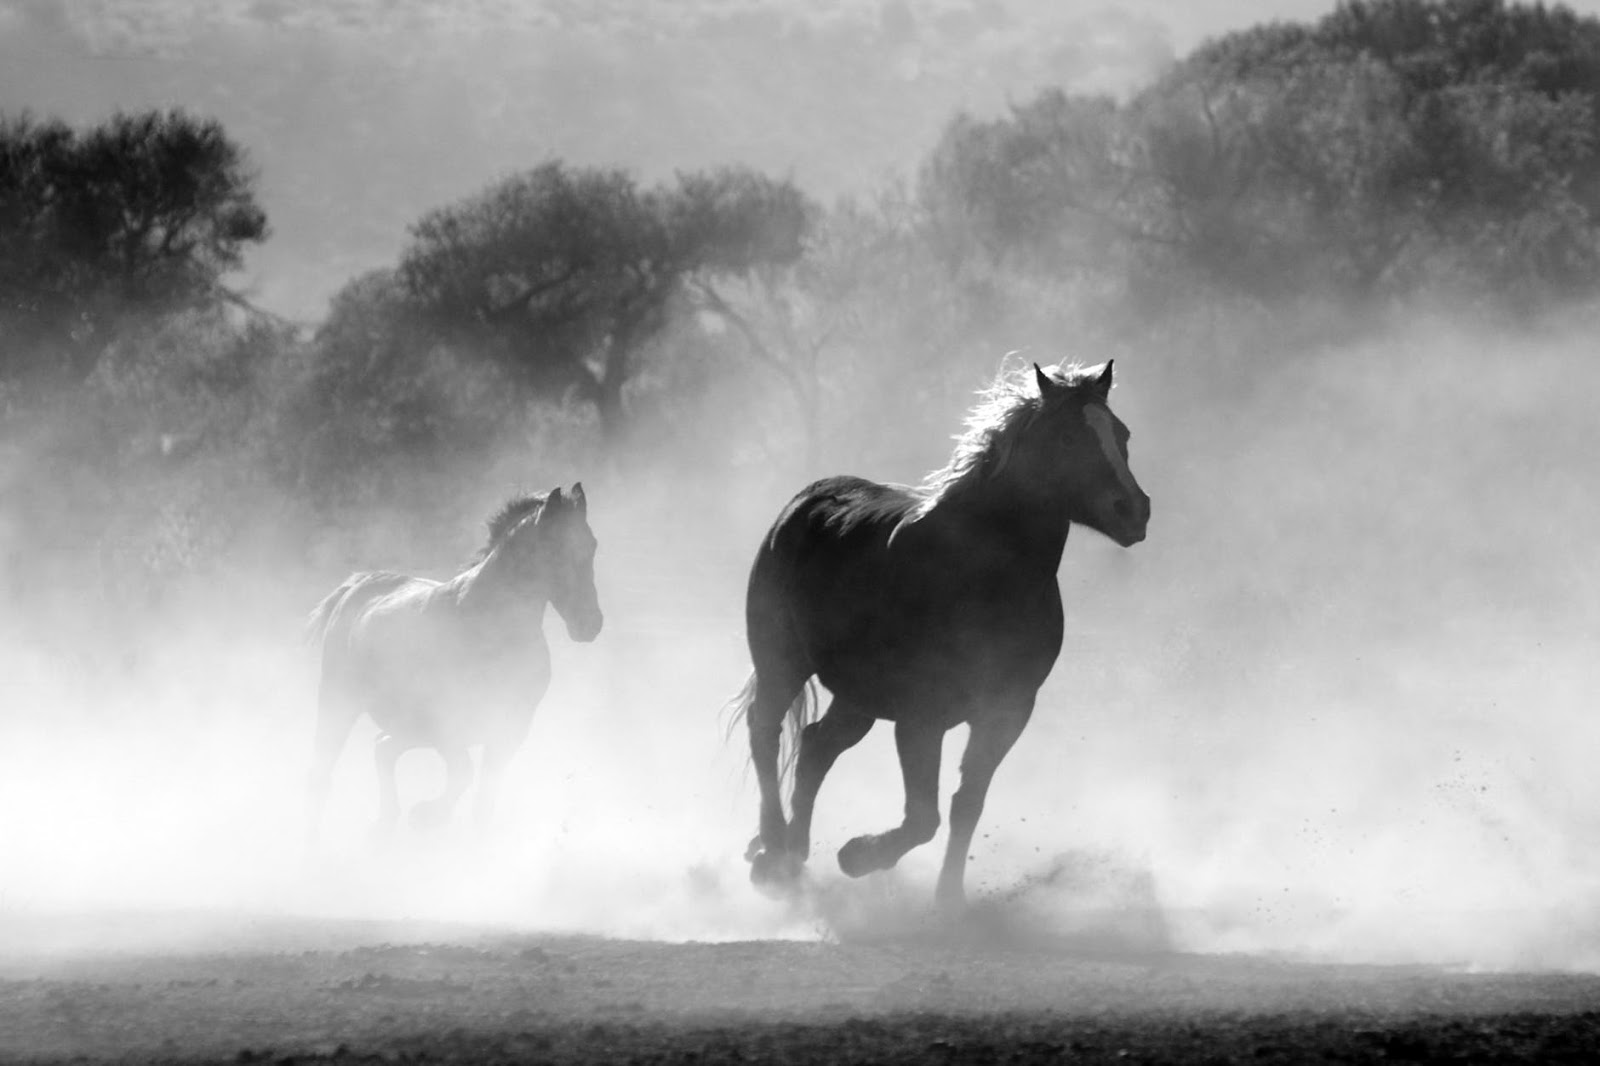 horses galloping through dust